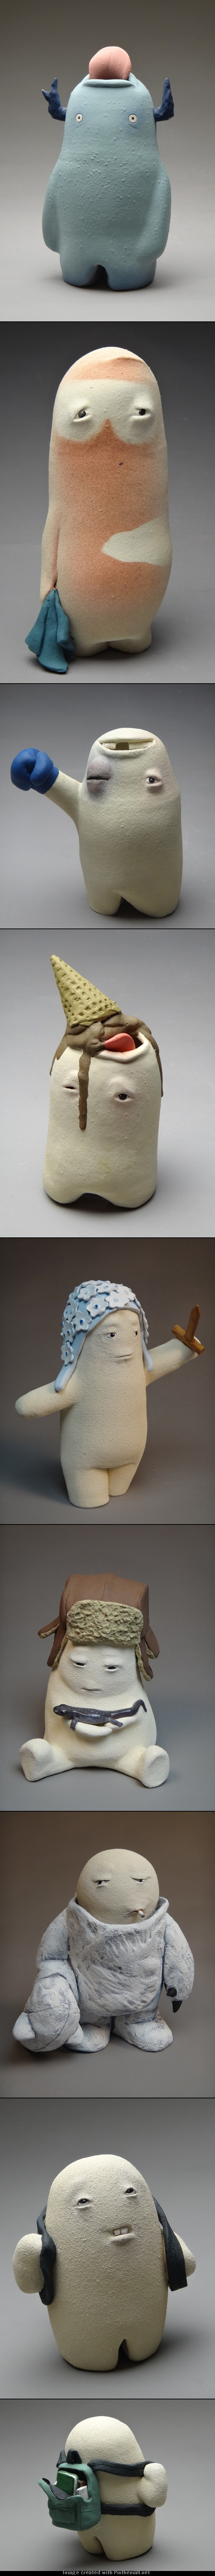 Sculpting by Katherine Moraller - Sweet Little Monsters, they are sweet not sure they are monsters! :-)